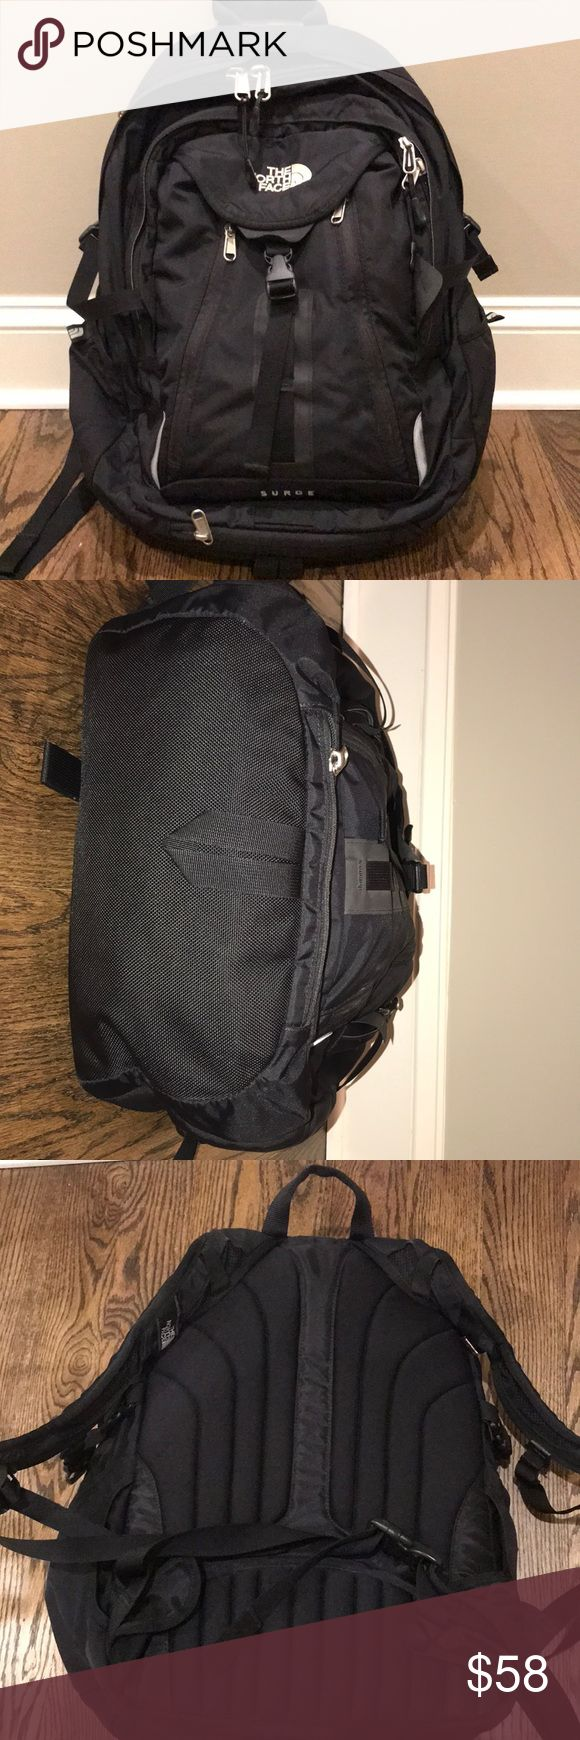 NorthFace Surge Backpack Good condition- bottom looks new, the NorthFace on the front is a little discolored, only a few snags on the back. Pen marks in only one pocket. Lots of great pockets- makes for a great school bag that doesn't show dirt!! Black is not faded! North Face Bags Backpacks